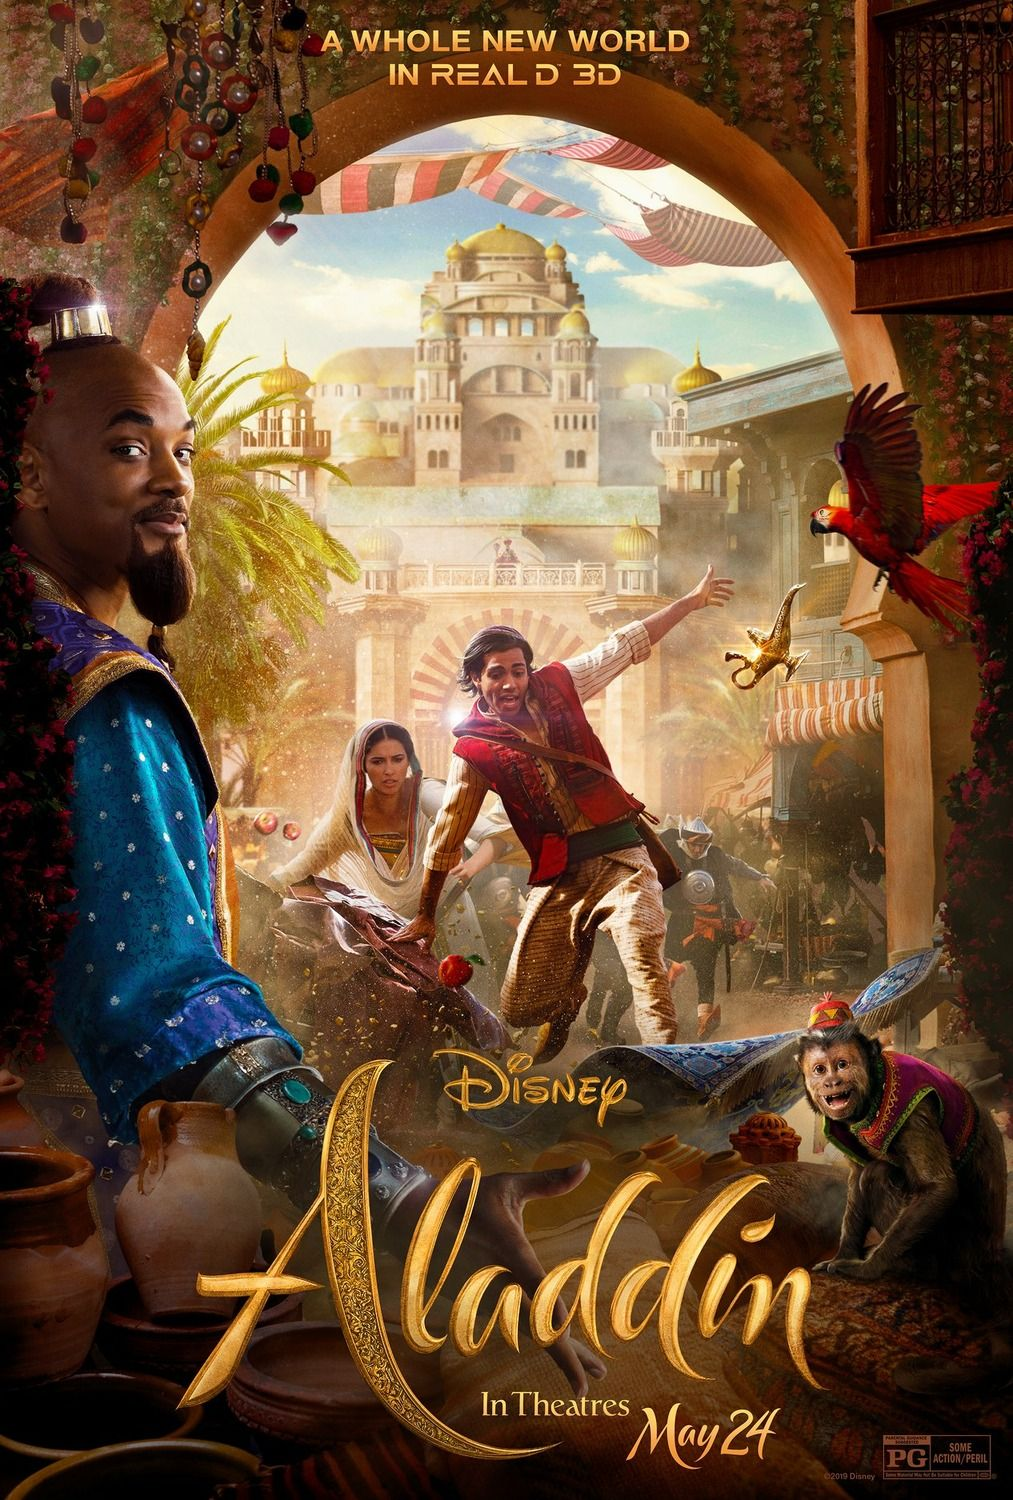 aladdin movie showtimes near me